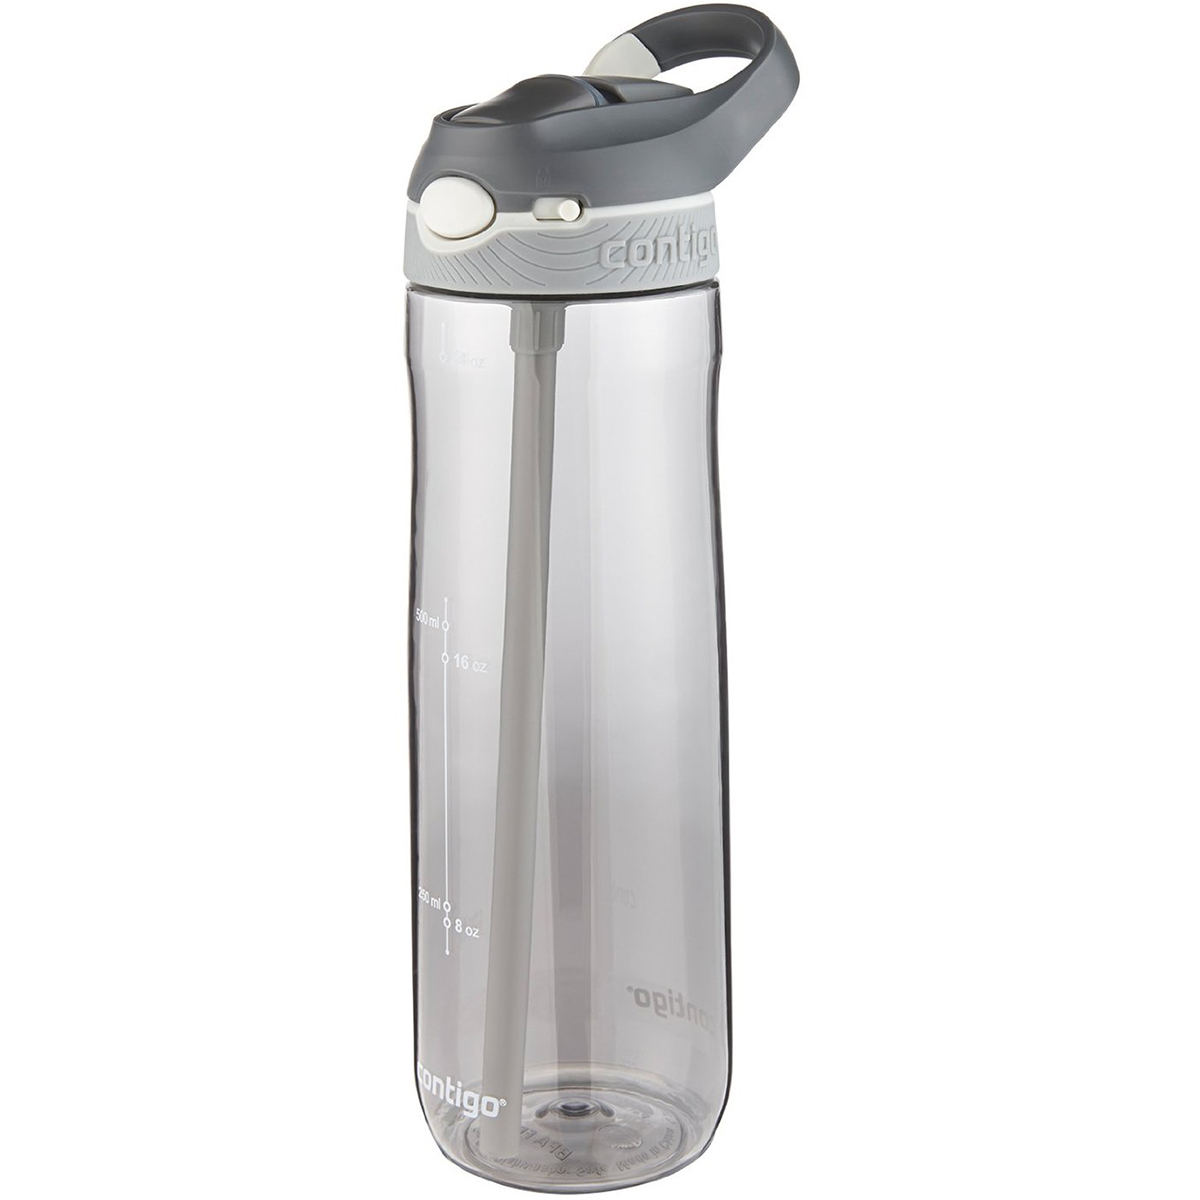 Contigo-24-oz-Ashland-Autospout-Water-Bottle miniature 24